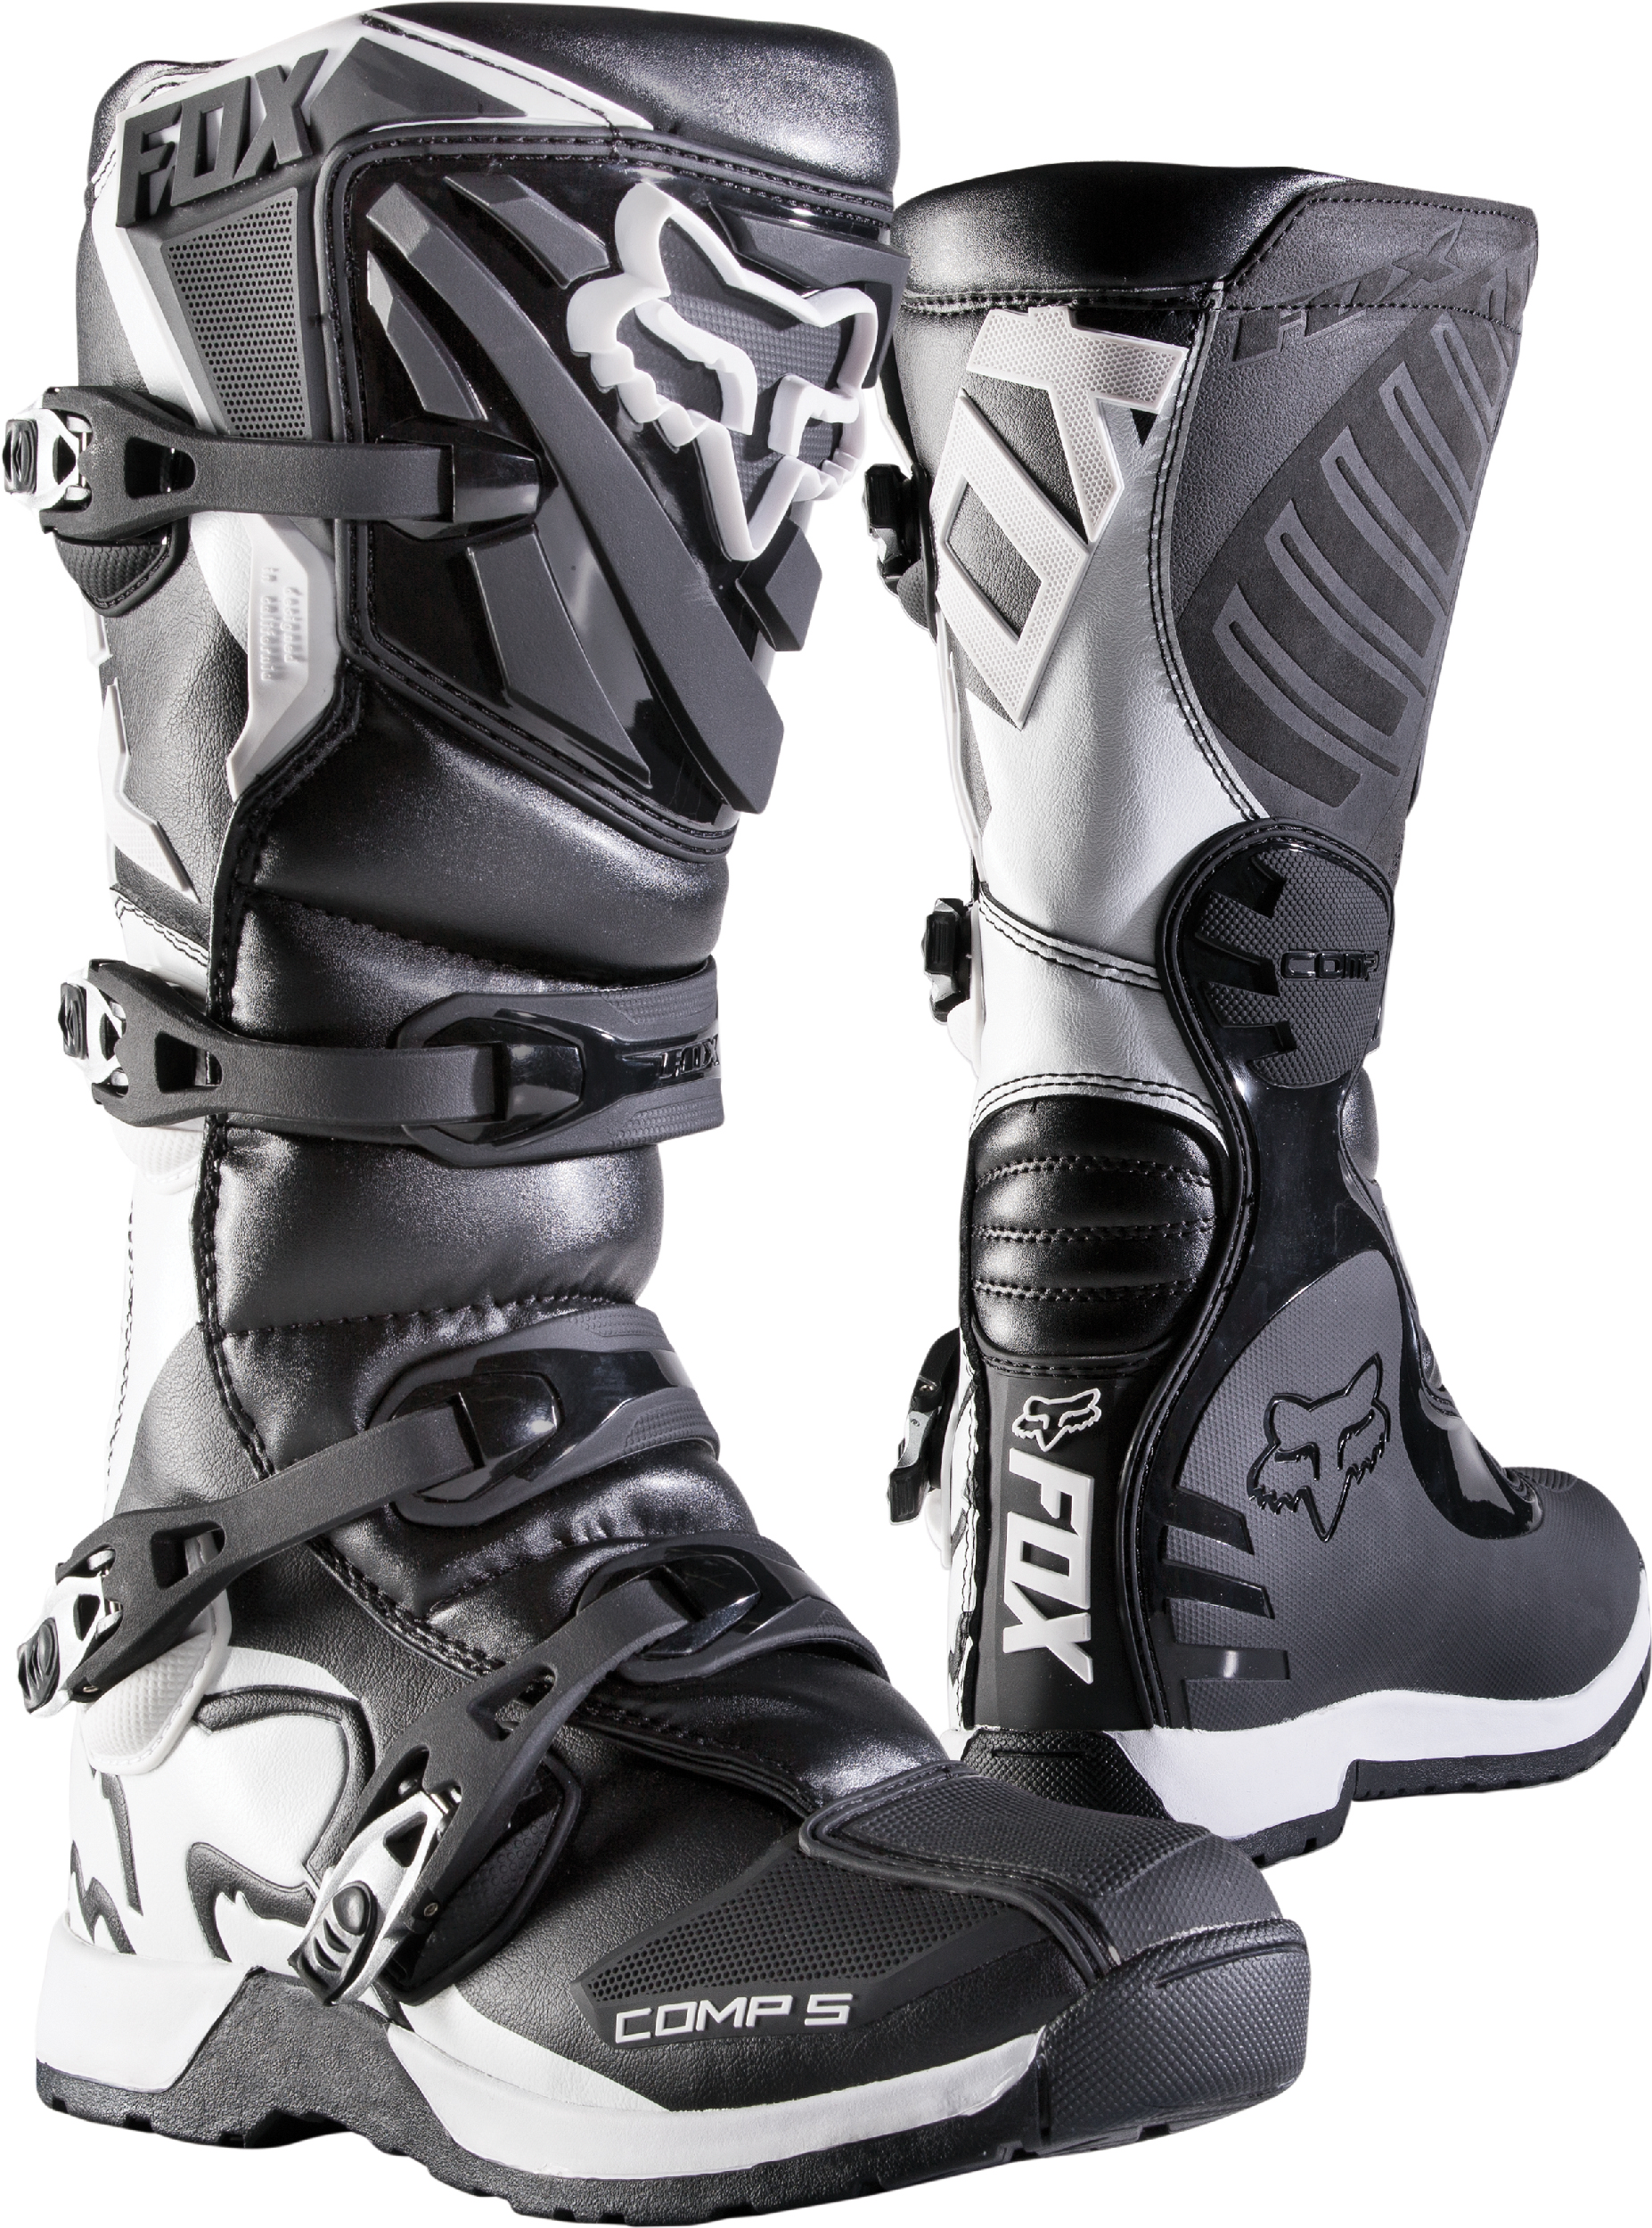 Youth Dirt Bike Boots >> Details About Fox Racing Youth Comp 5y Black White Dirt Bike Boots Motocross Atv Mx